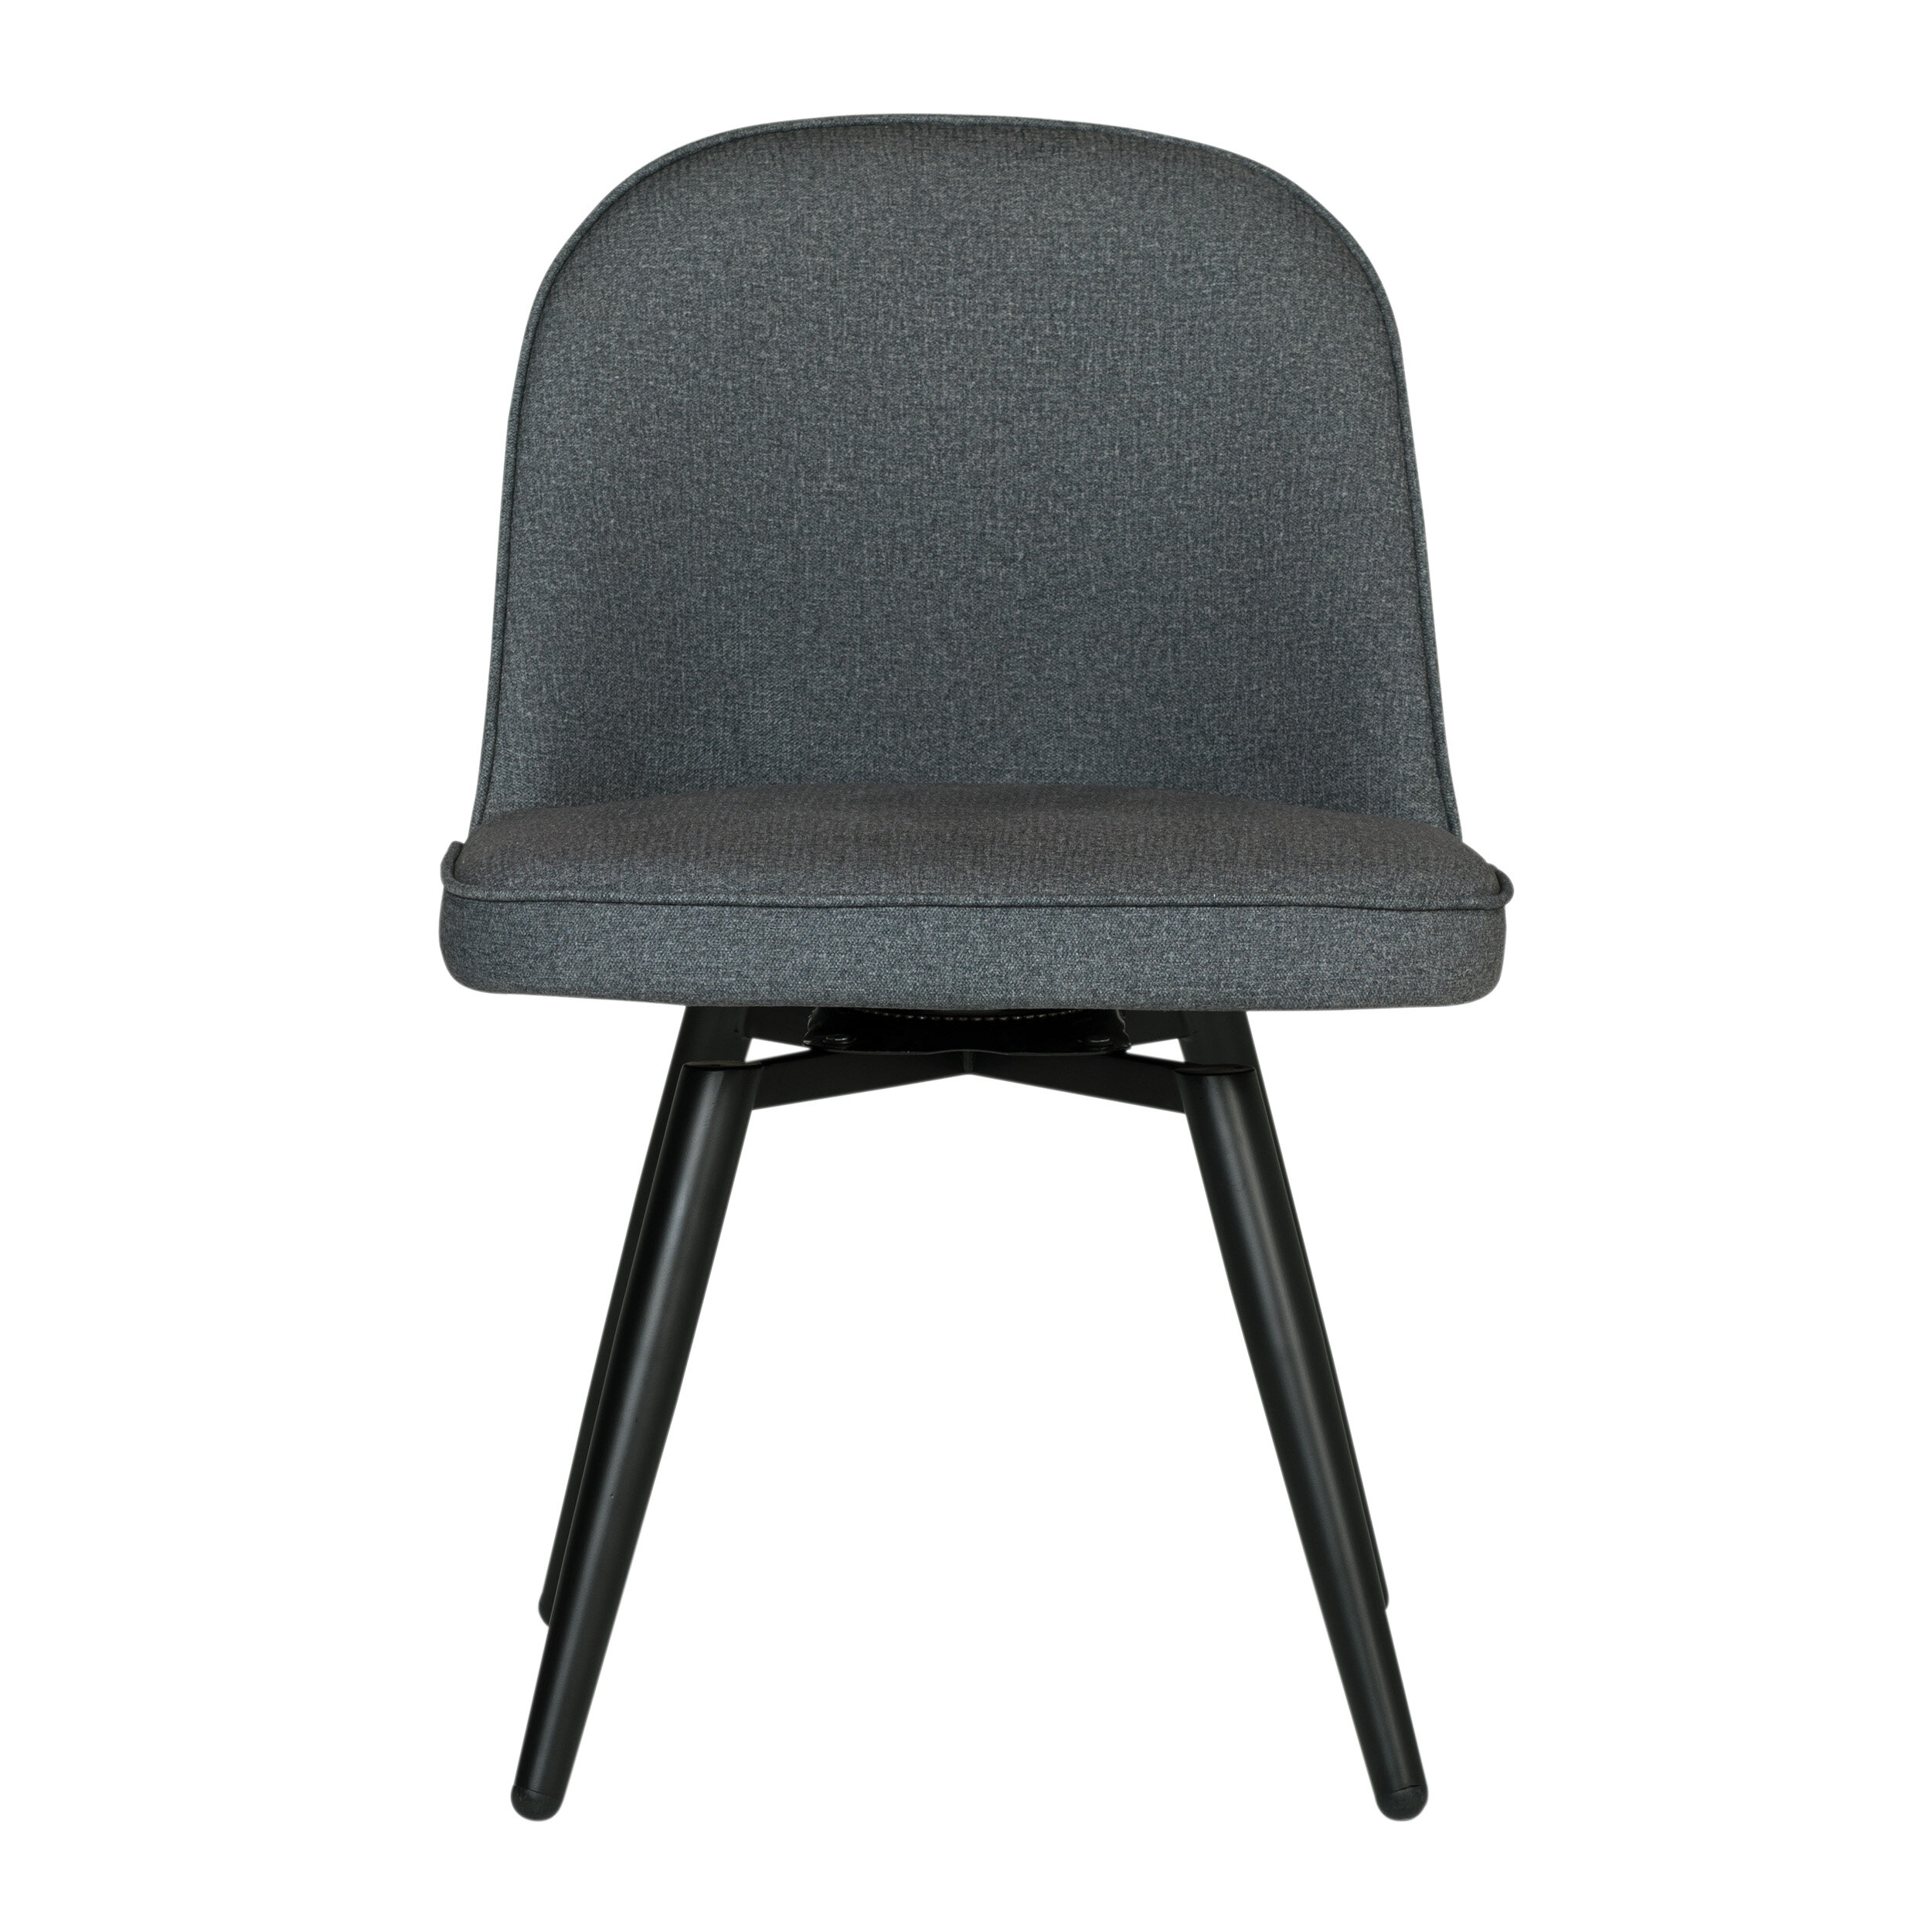 Dome Swivel Side Chair Regarding Brister Swivel Side Chairs (View 12 of 15)